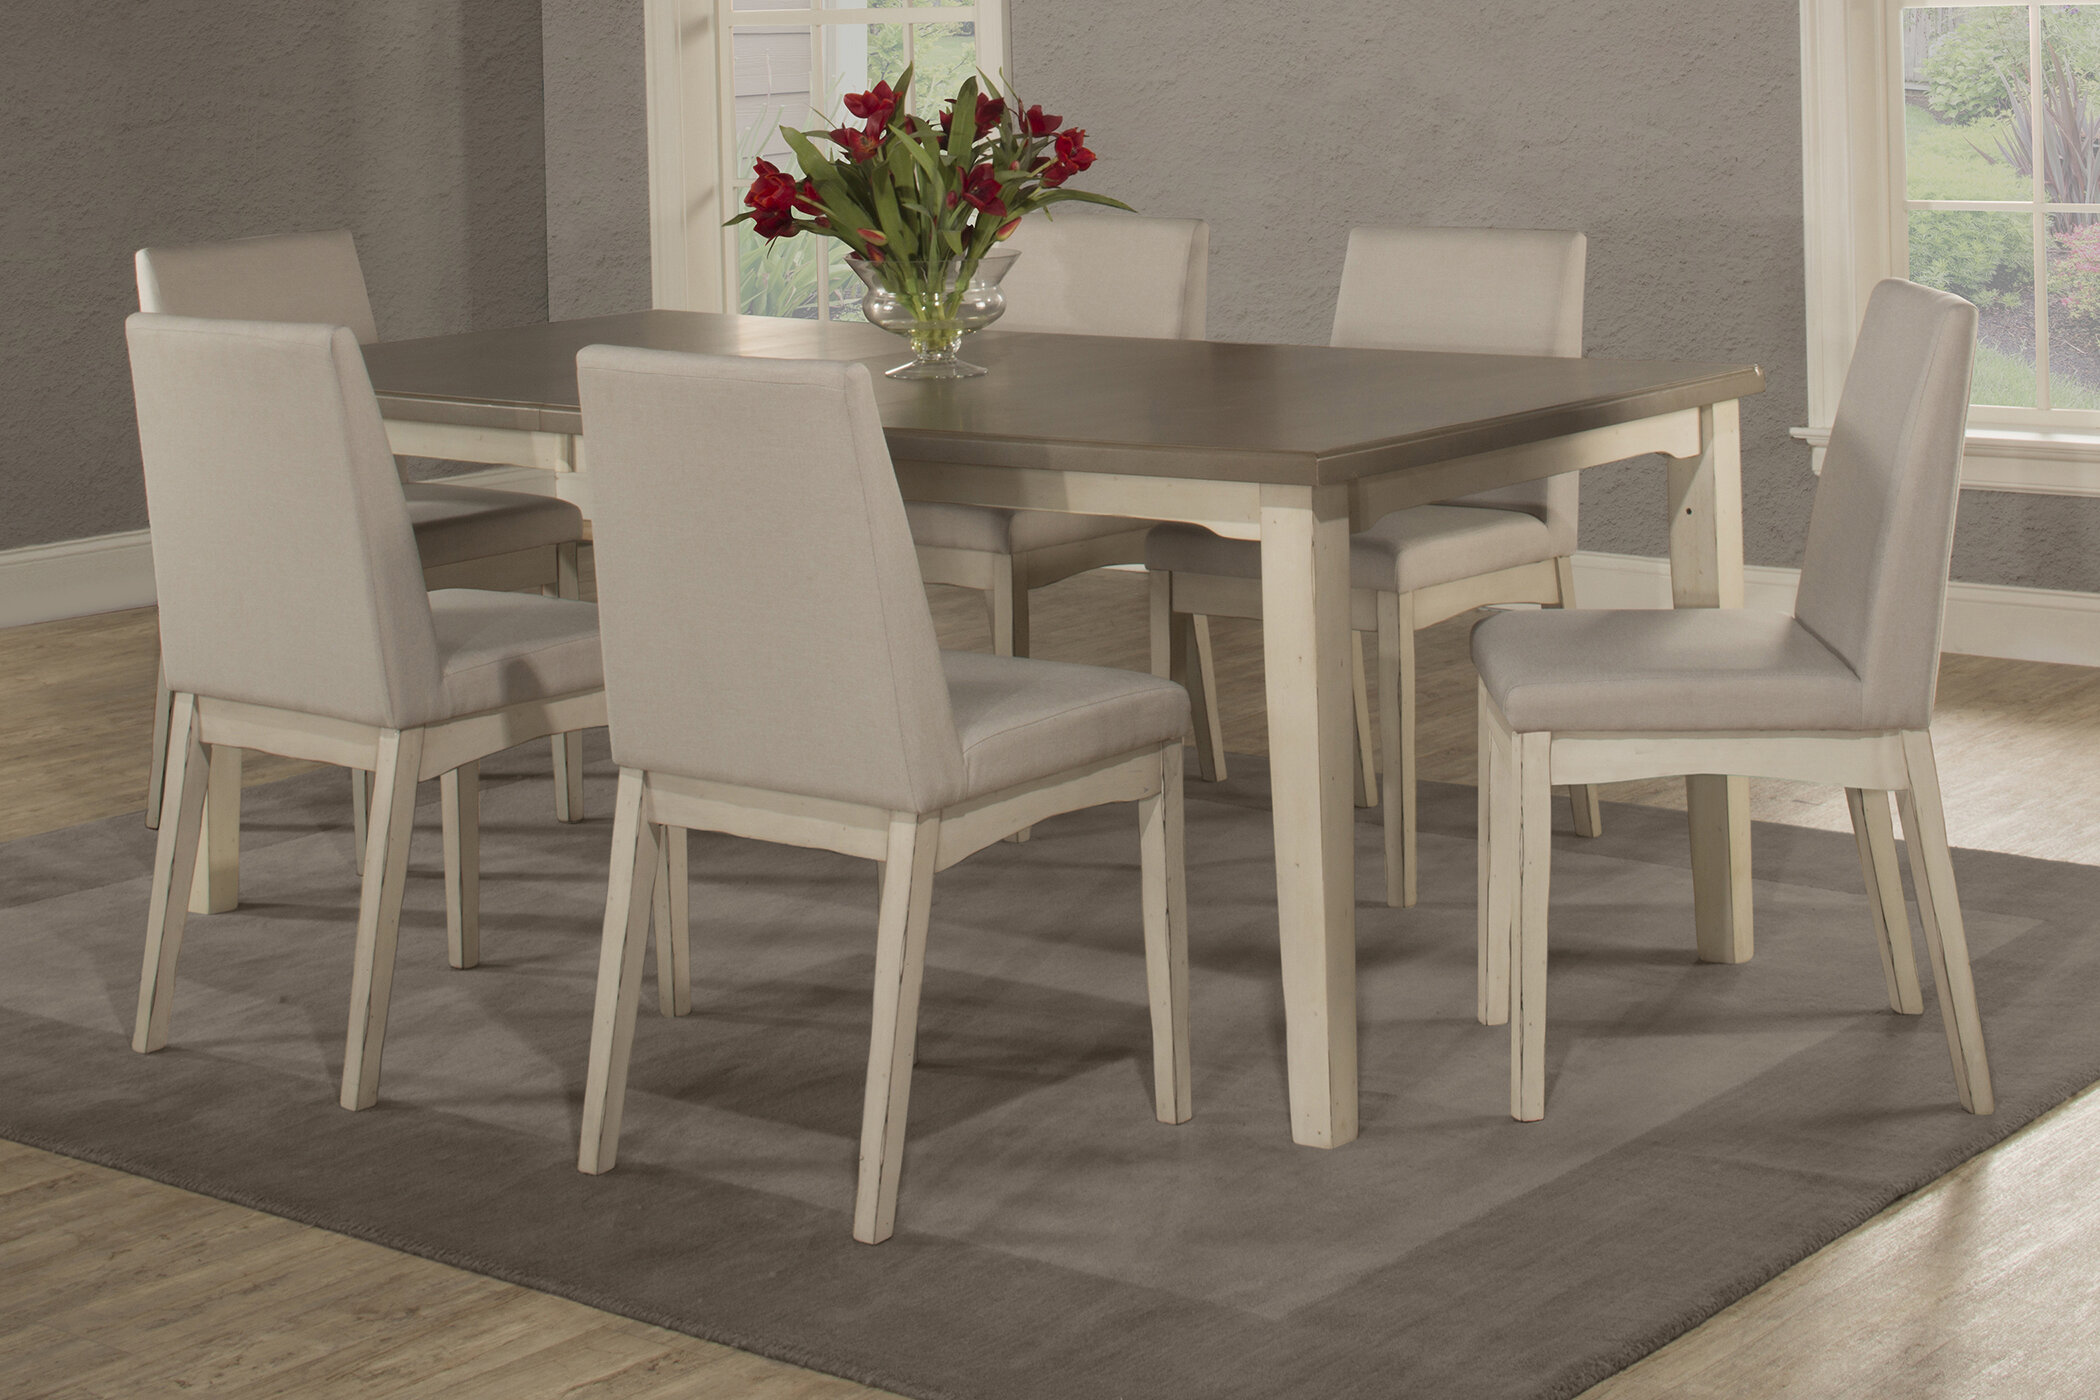 Attrayant Rosecliff Heights Kinsey 7 Piece Removable Leaf Dining Set U0026 Reviews |  Wayfair